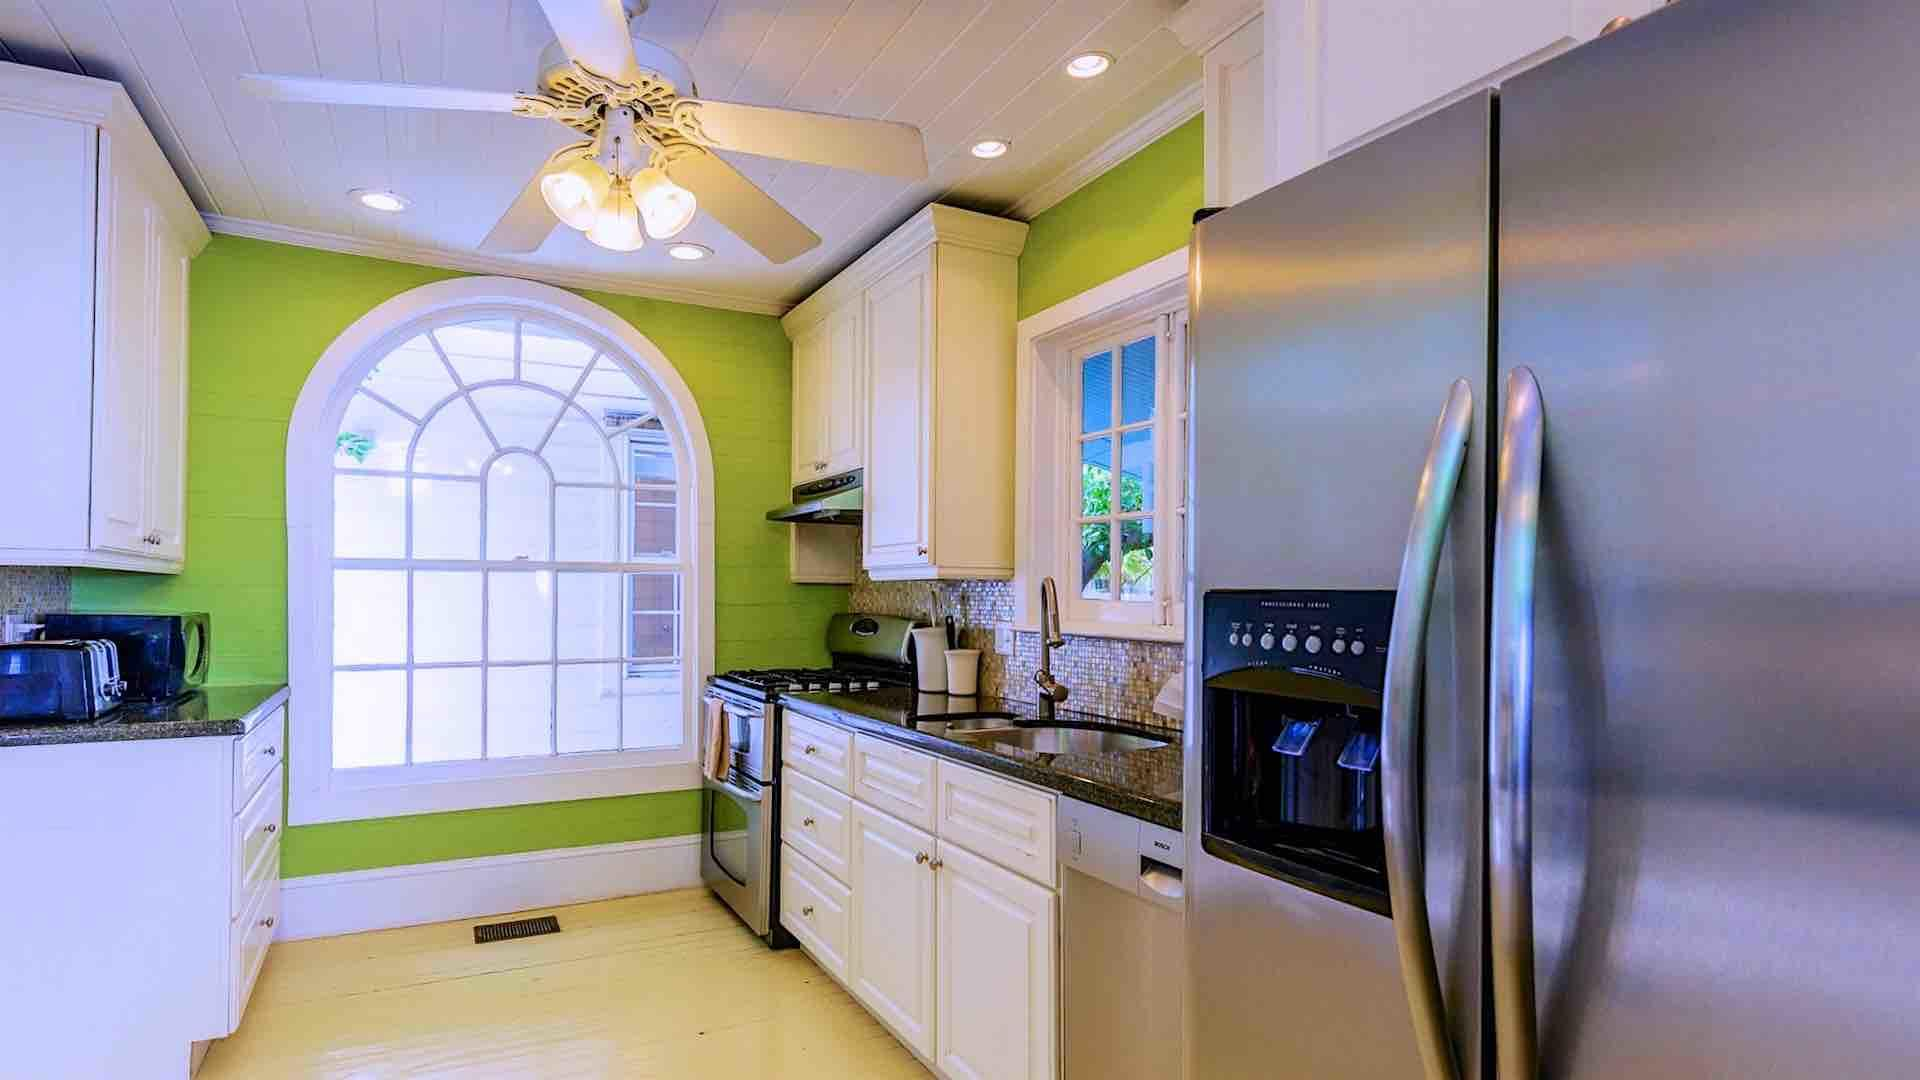 Kitchen has stainless steel appliances, and is equipped to prepare any meal.